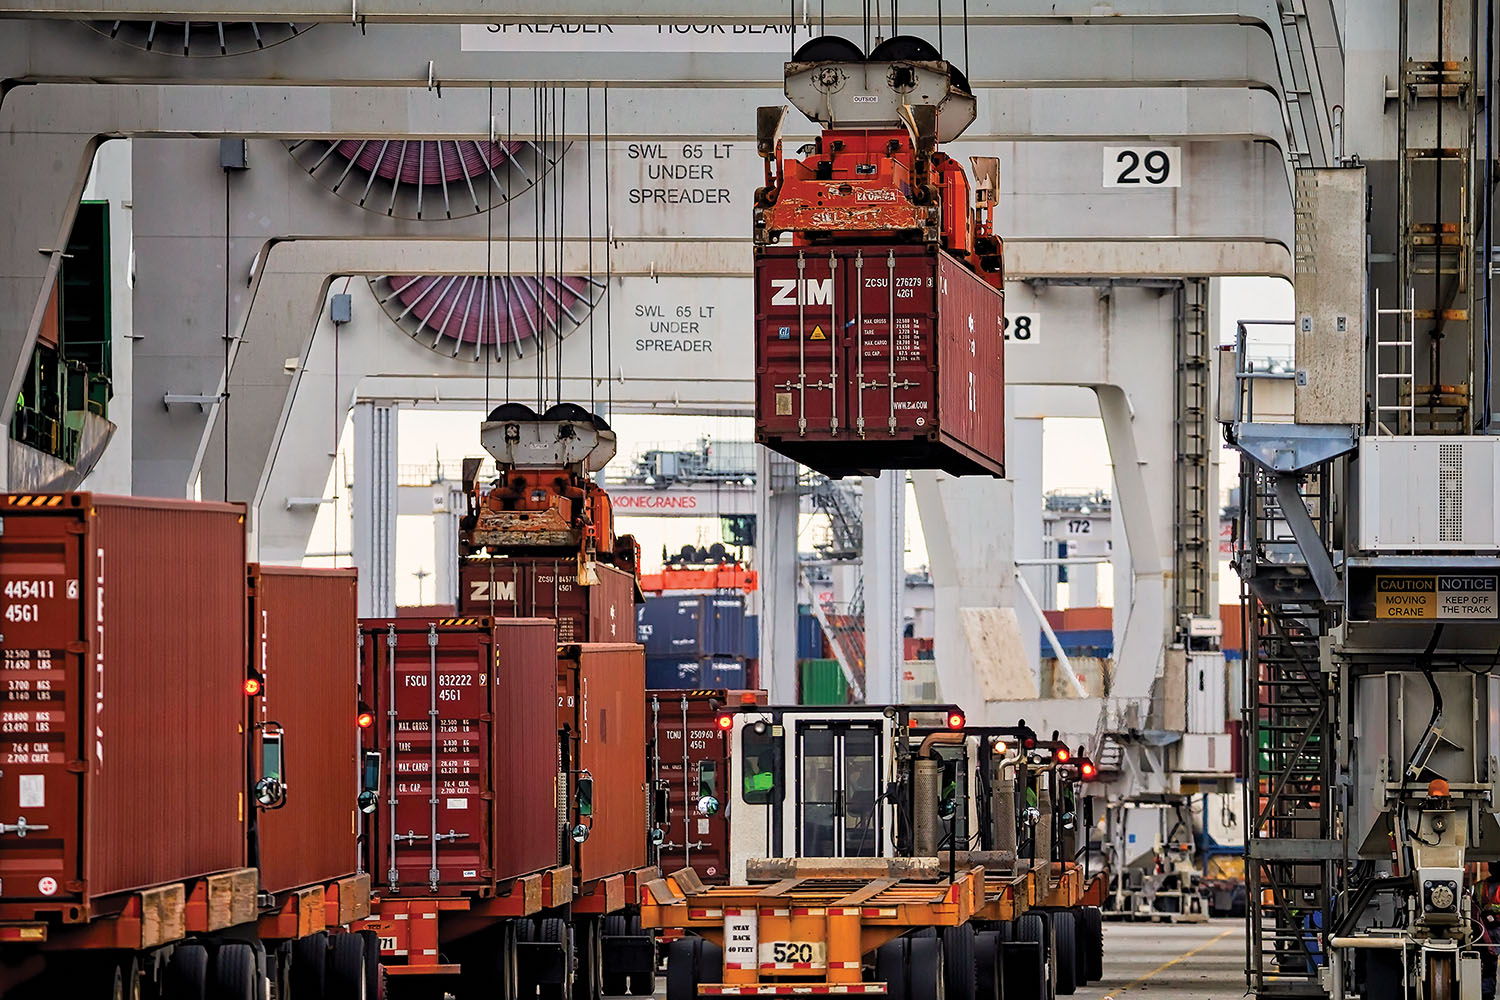 Ship-to-shore cranes load export boxes onto vessels at the Port of Savannah's Garden City Terminal in this February 26, 2018, file photo. The Georgia Ports Authority handled nearly 414,000 twenty-foot-equivalent container units in October. (photo courtesy of Georgia Ports Authority/Stephen B. Morton)